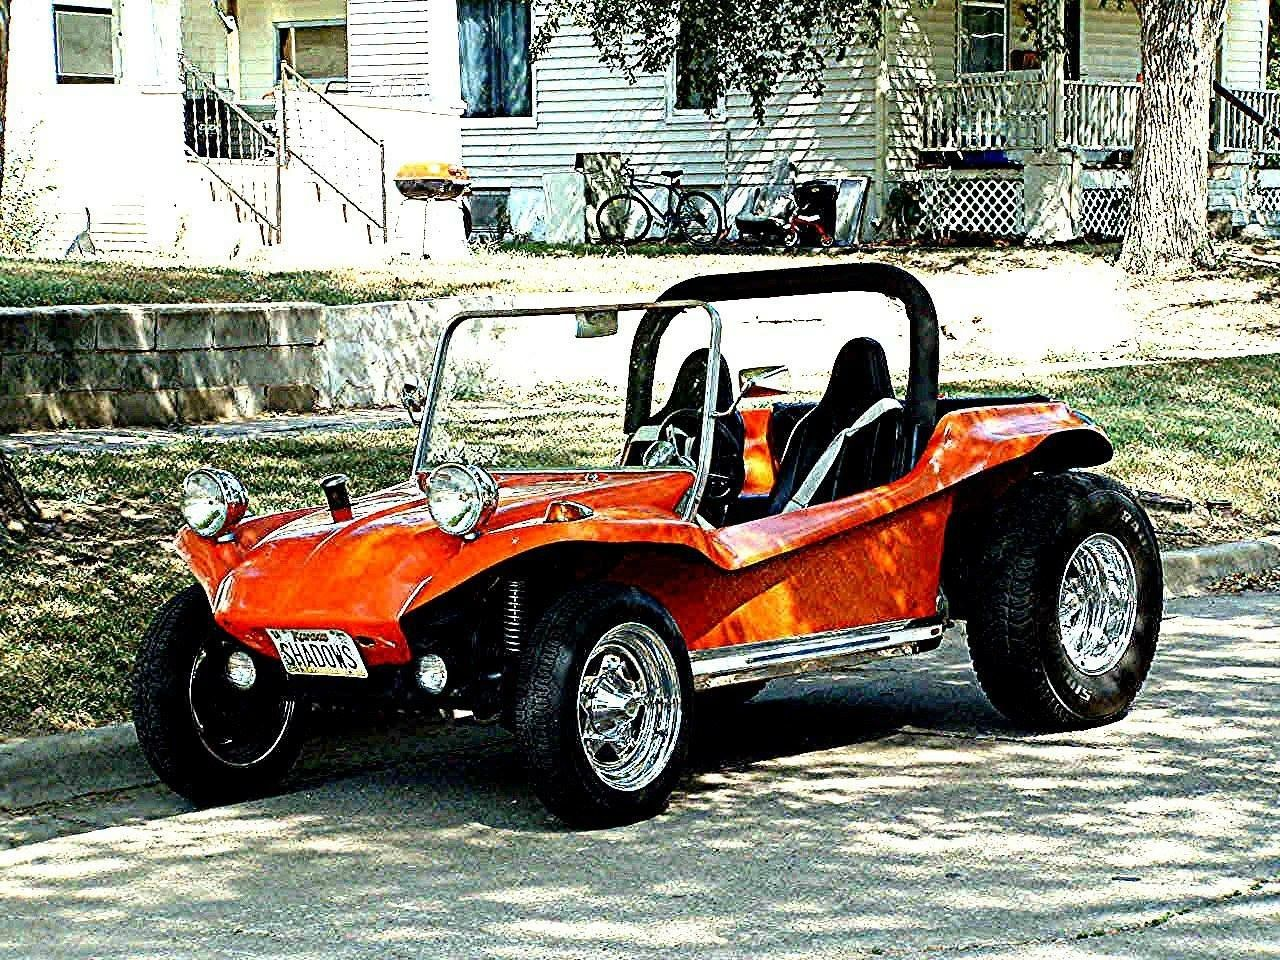 Pin by David Adams on Dune Buggy | Beach buggy, Offroad, Dune